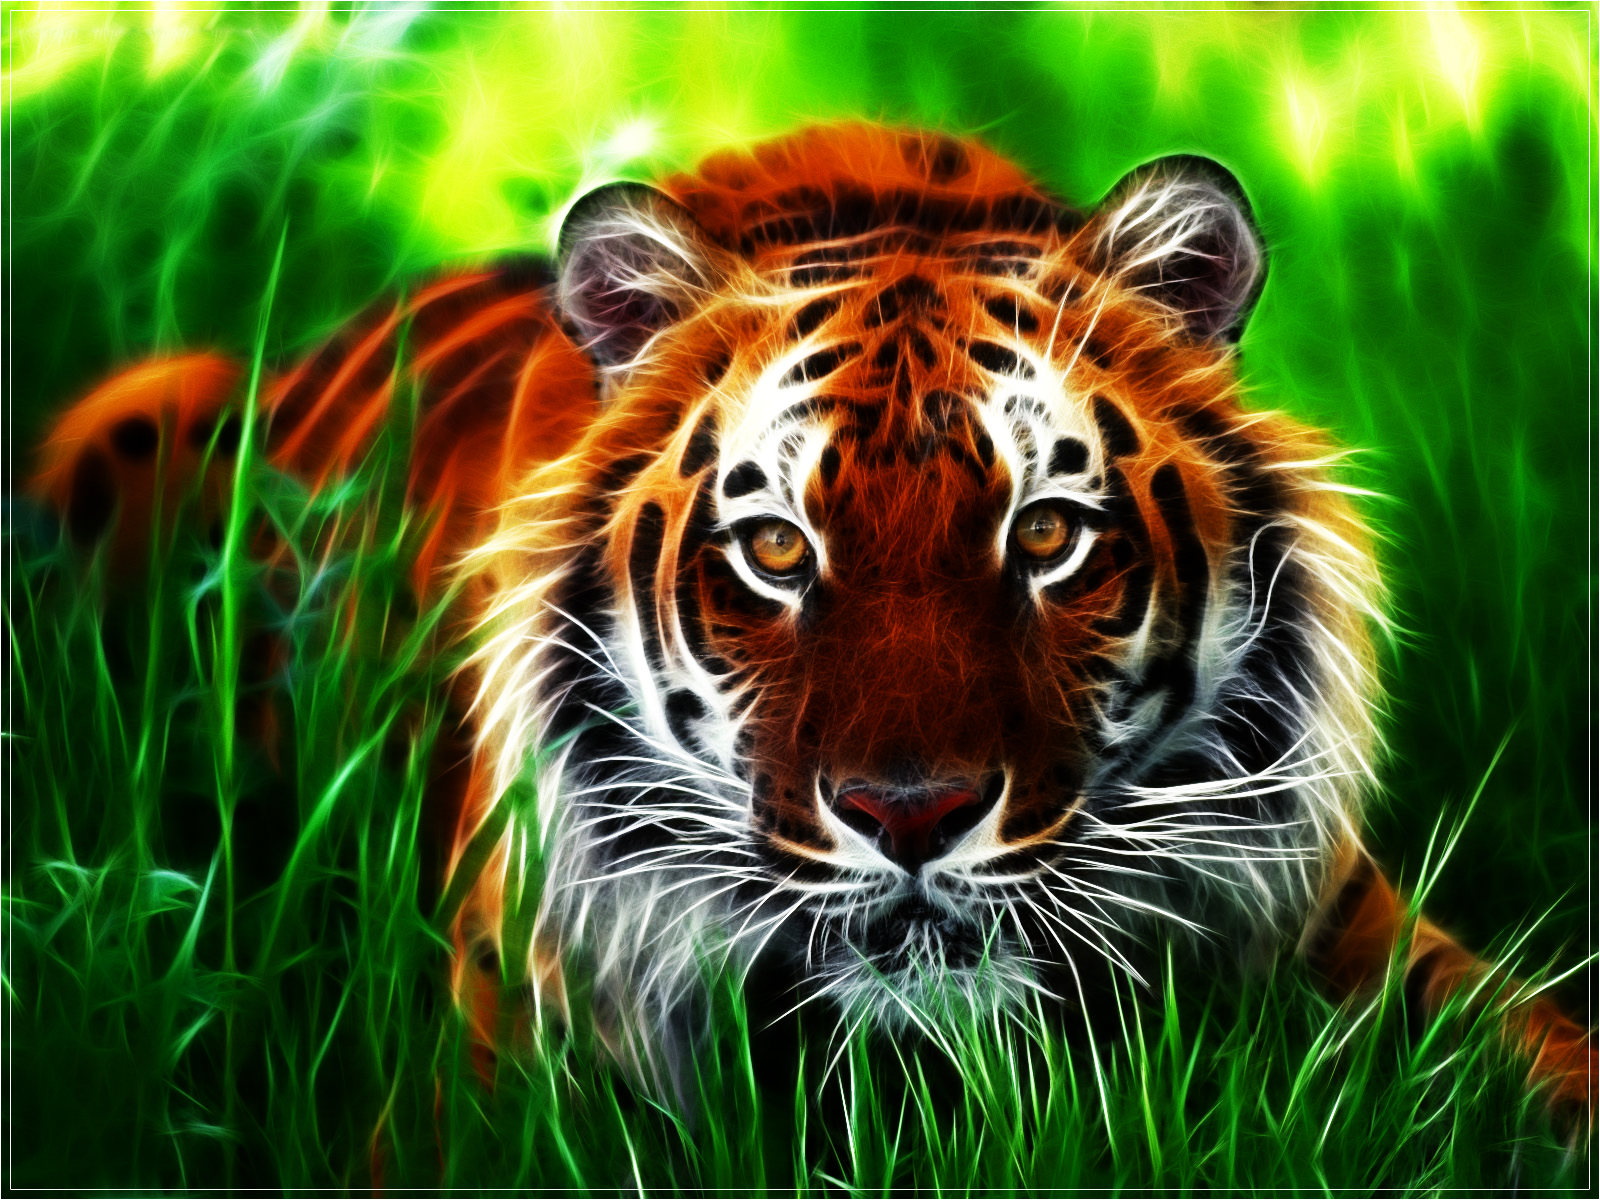 Hd wallpaper download for pc - Tiger